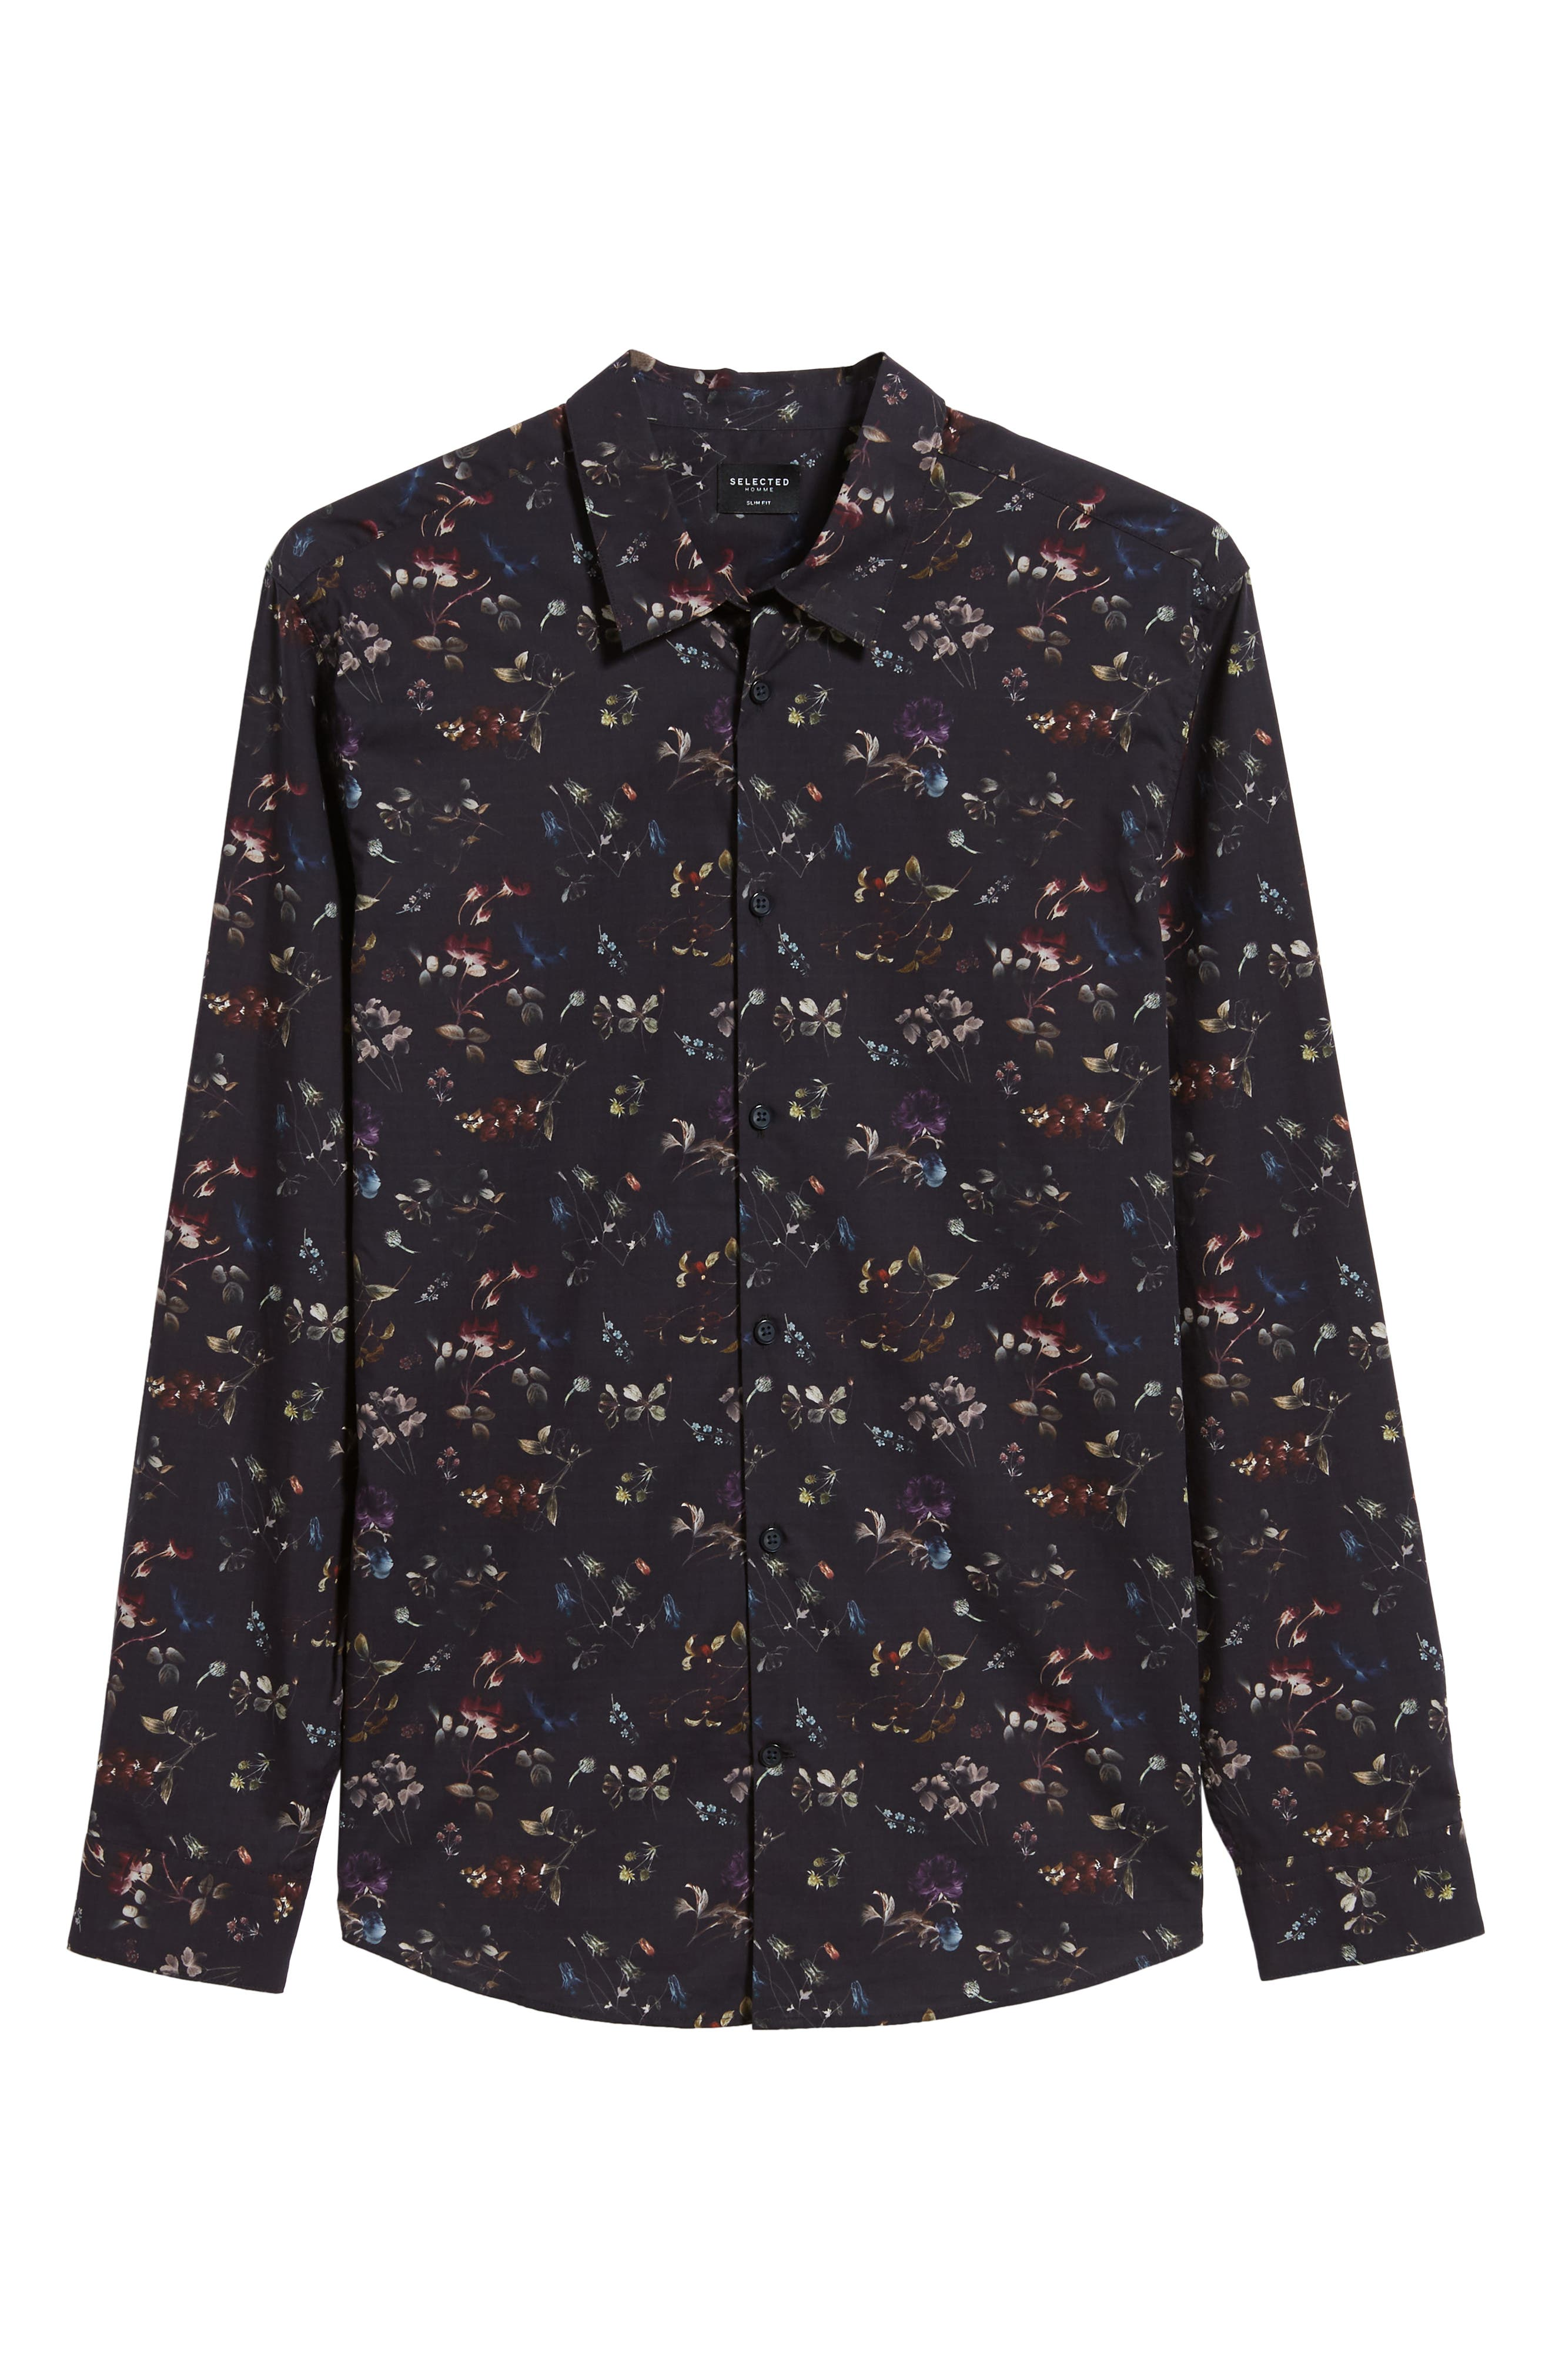 Primus Slim Fit Floral Print Sport Shirt,                             Alternate thumbnail 5, color,                             DARK NAVY